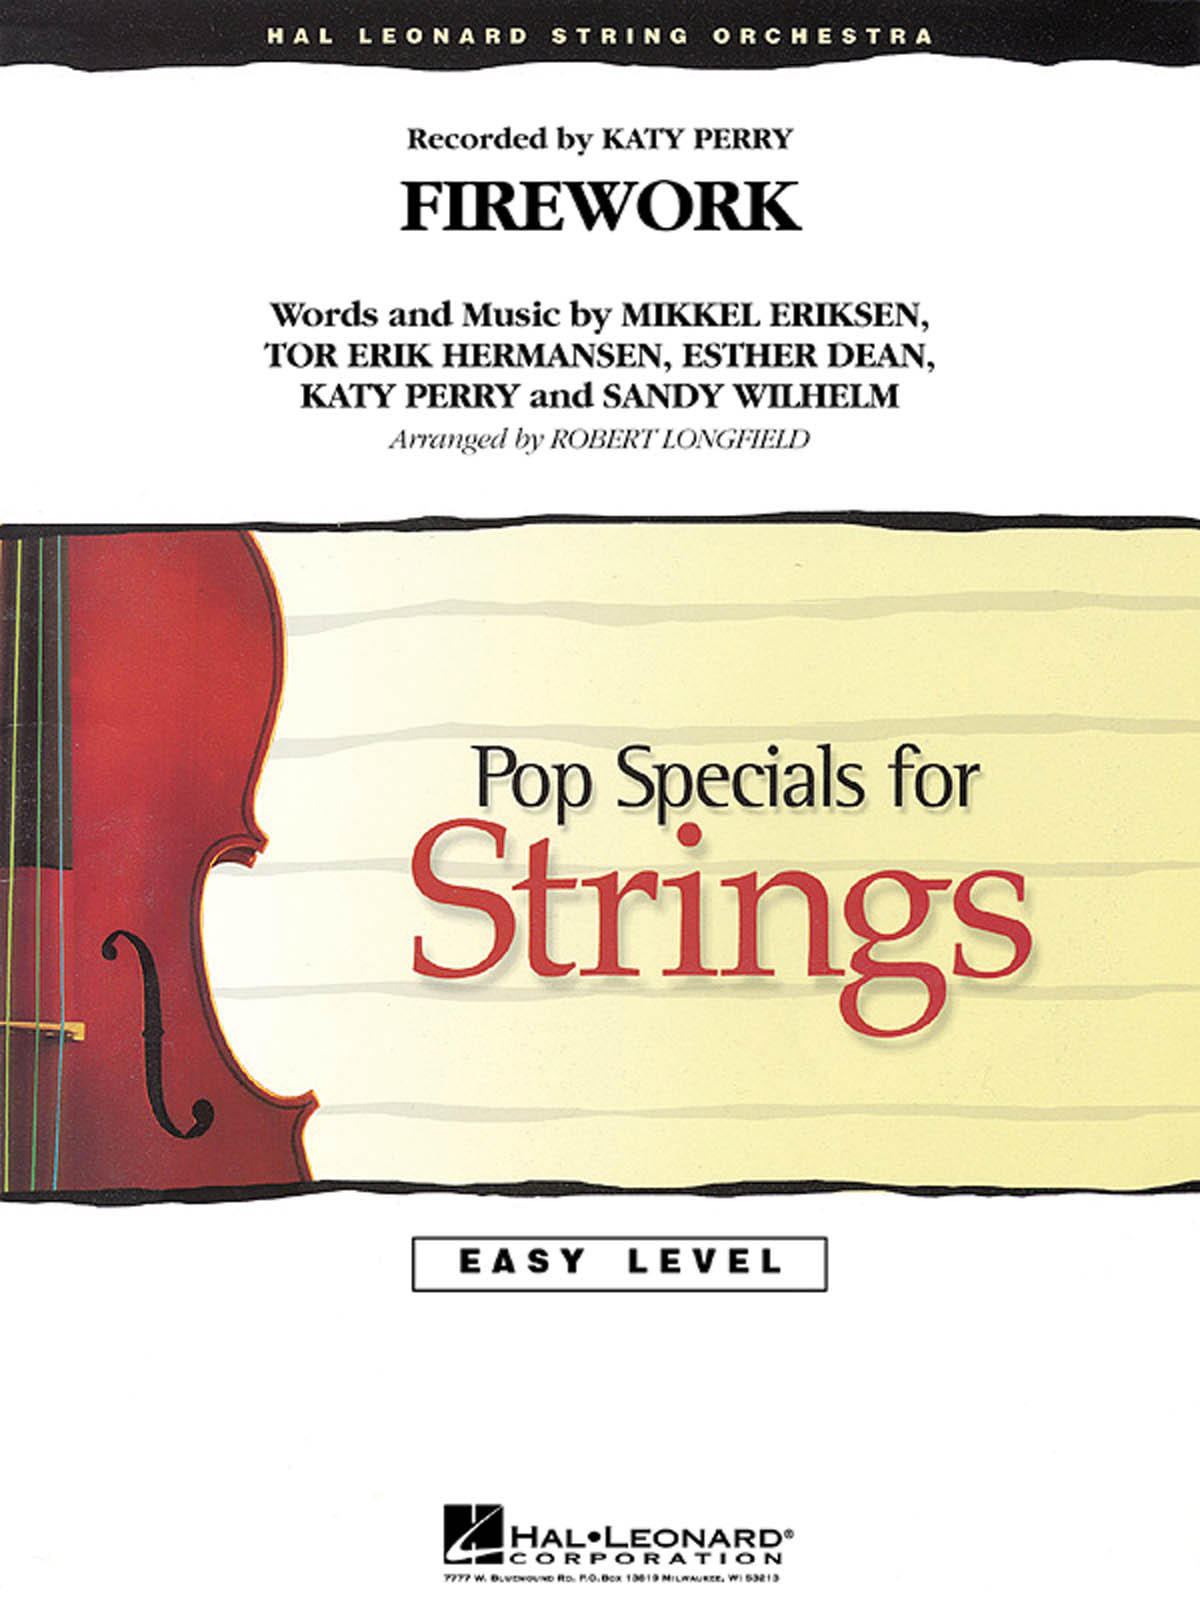 Katy Perry: Firework: String Orchestra: Score & Parts